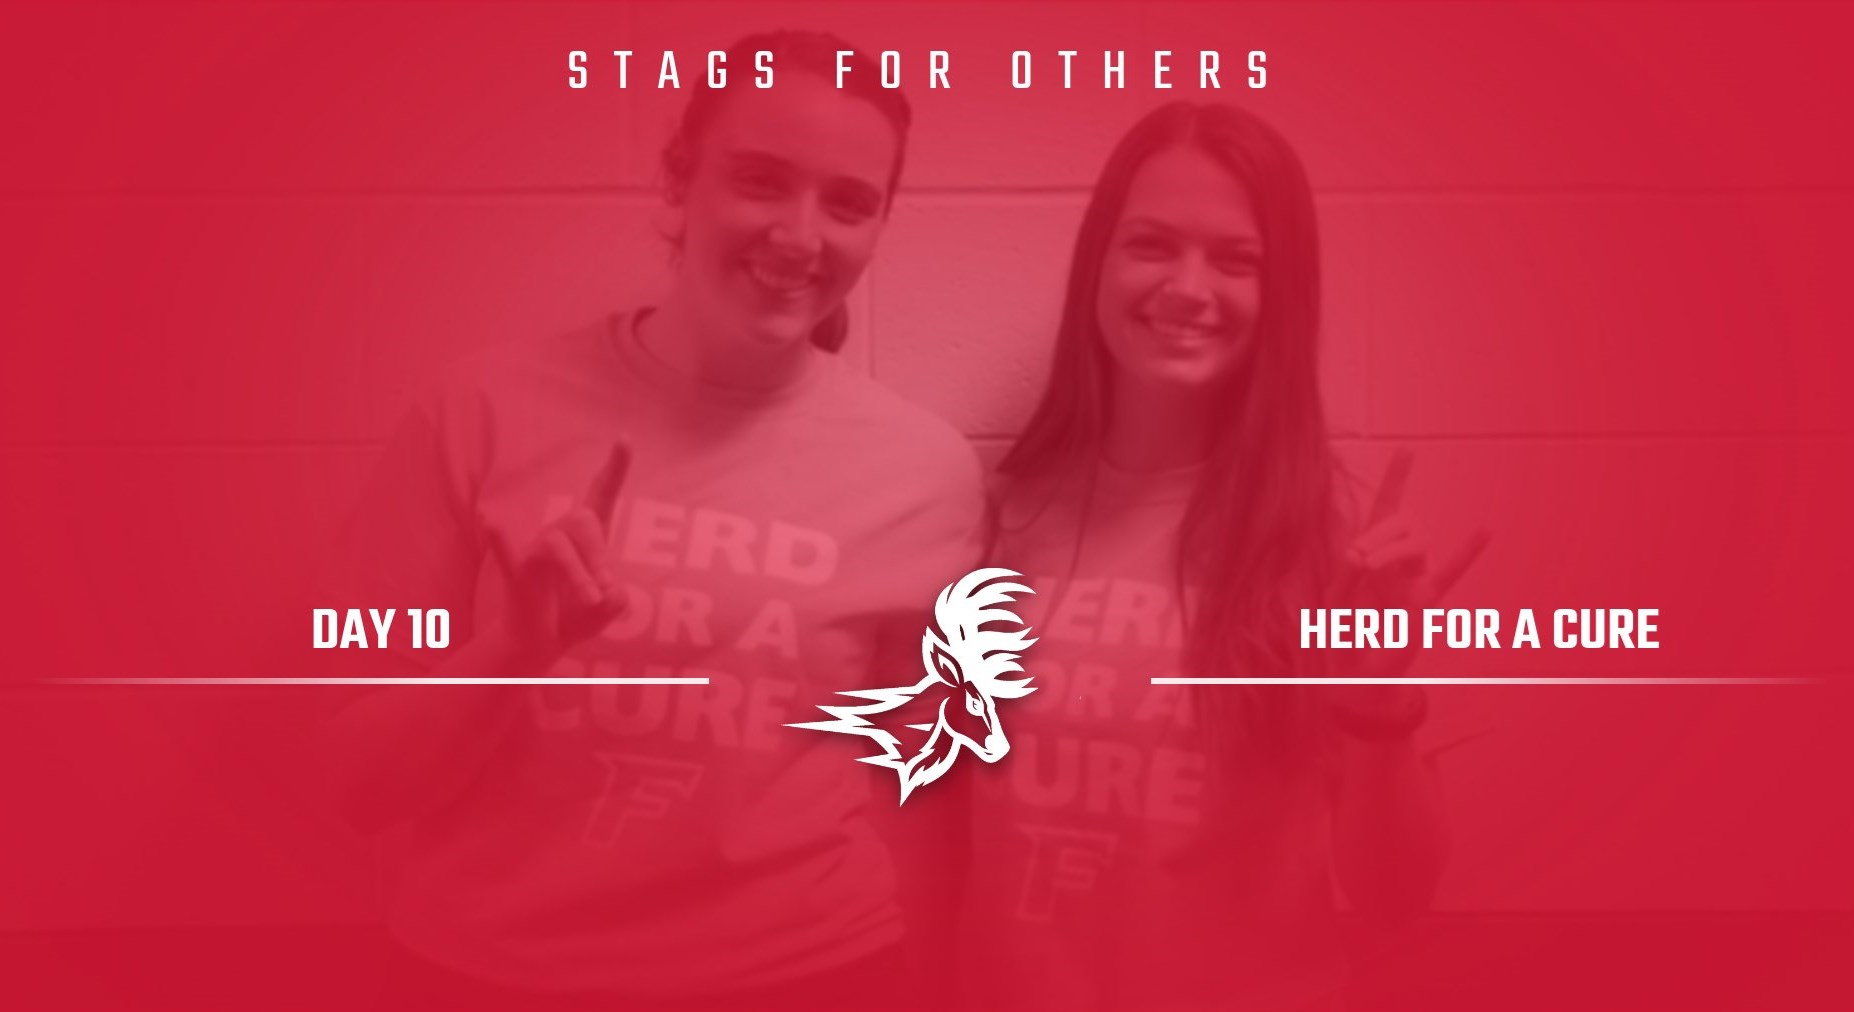 Stags for Others: Herd for a Cure